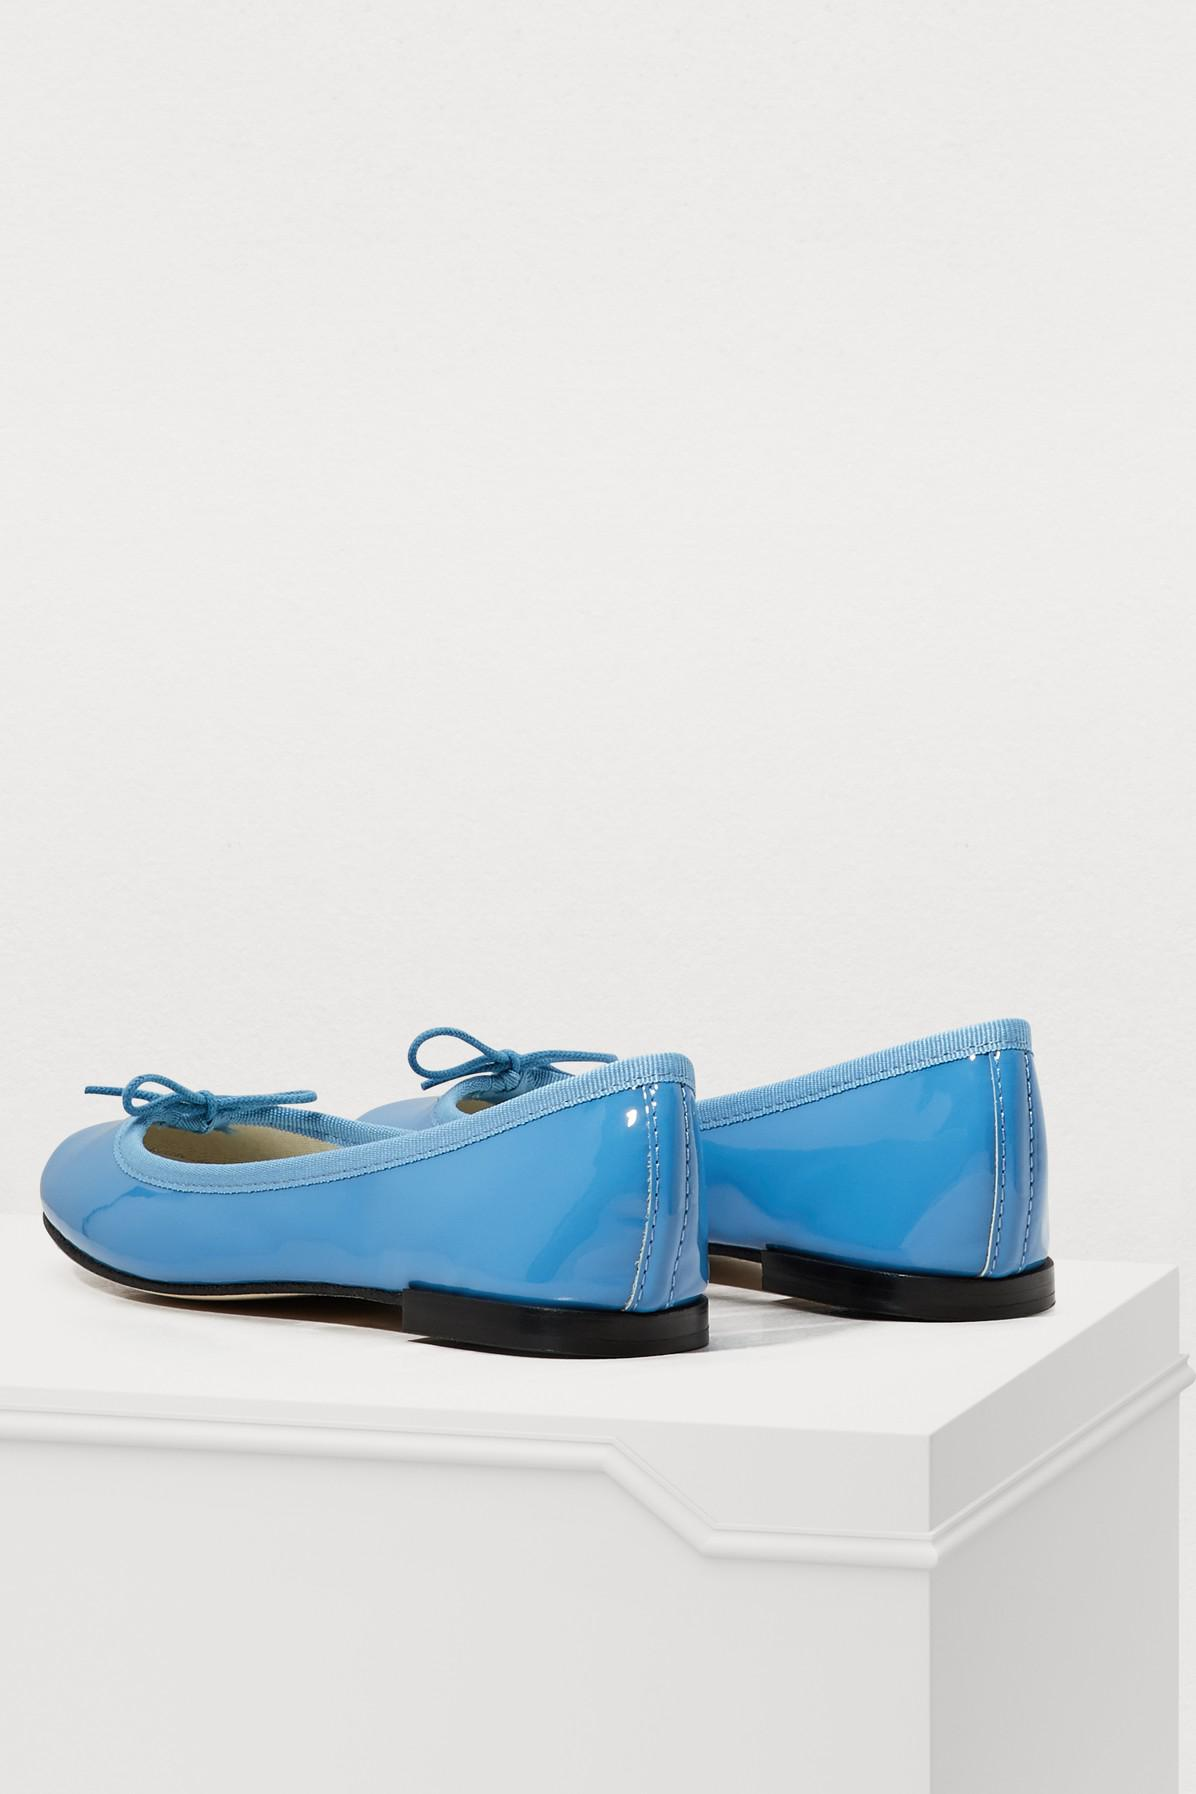 23db4b99400 Lyst - Repetto Cinderella Patent Leather Ballet Pumps in Blue